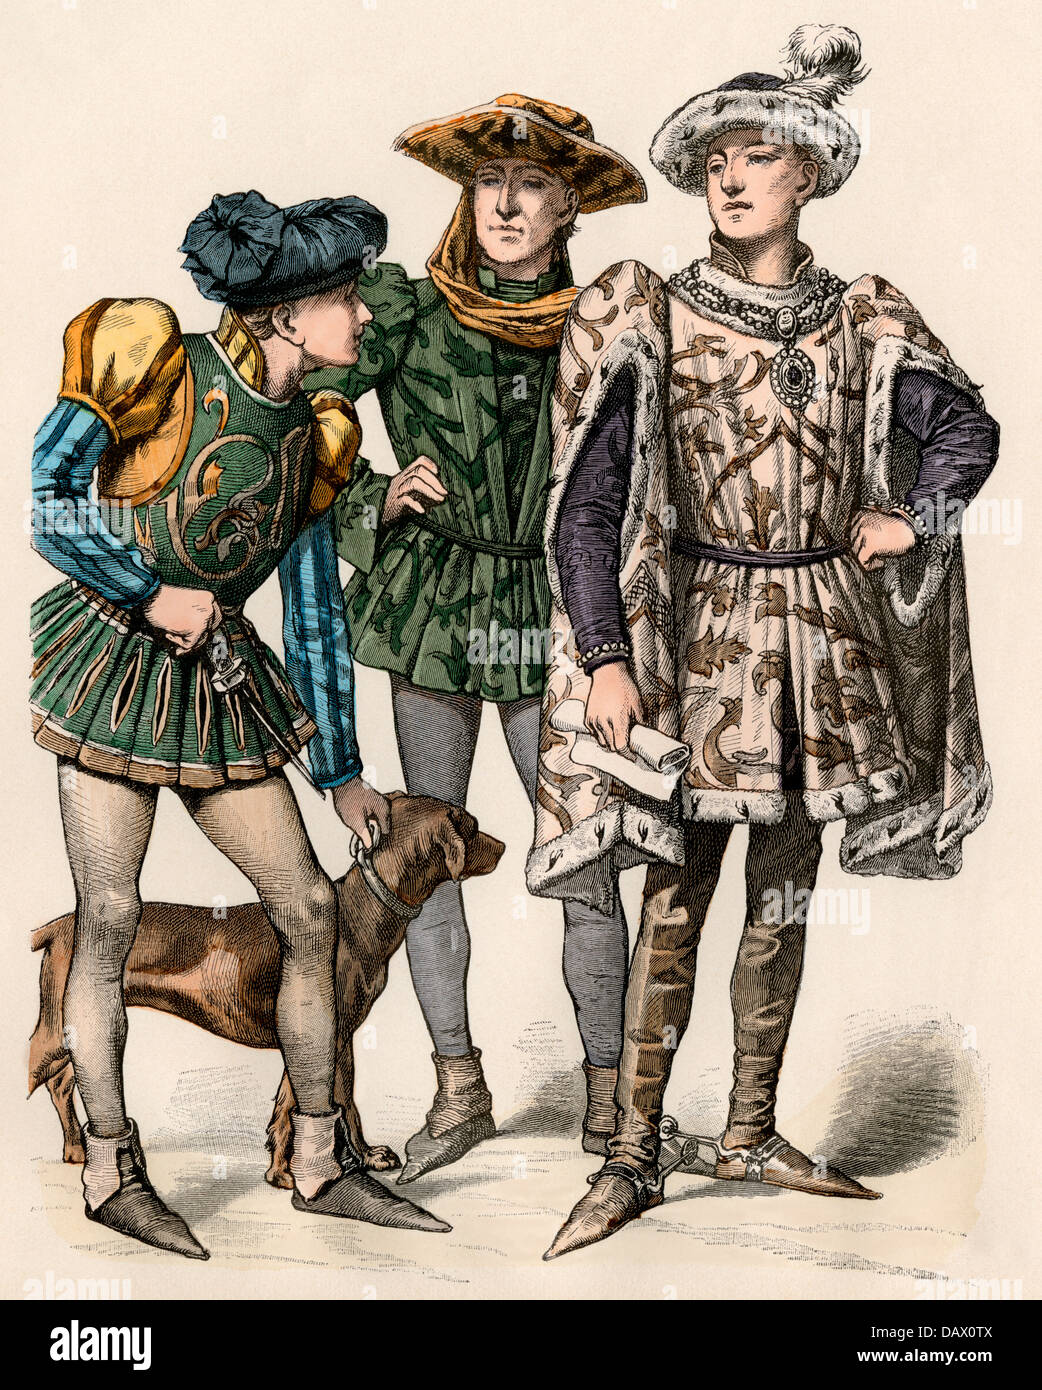 Charles the Bold, Duke of Burgundy (right), with his attendants, 1400s. Hand-colored print - Stock Image